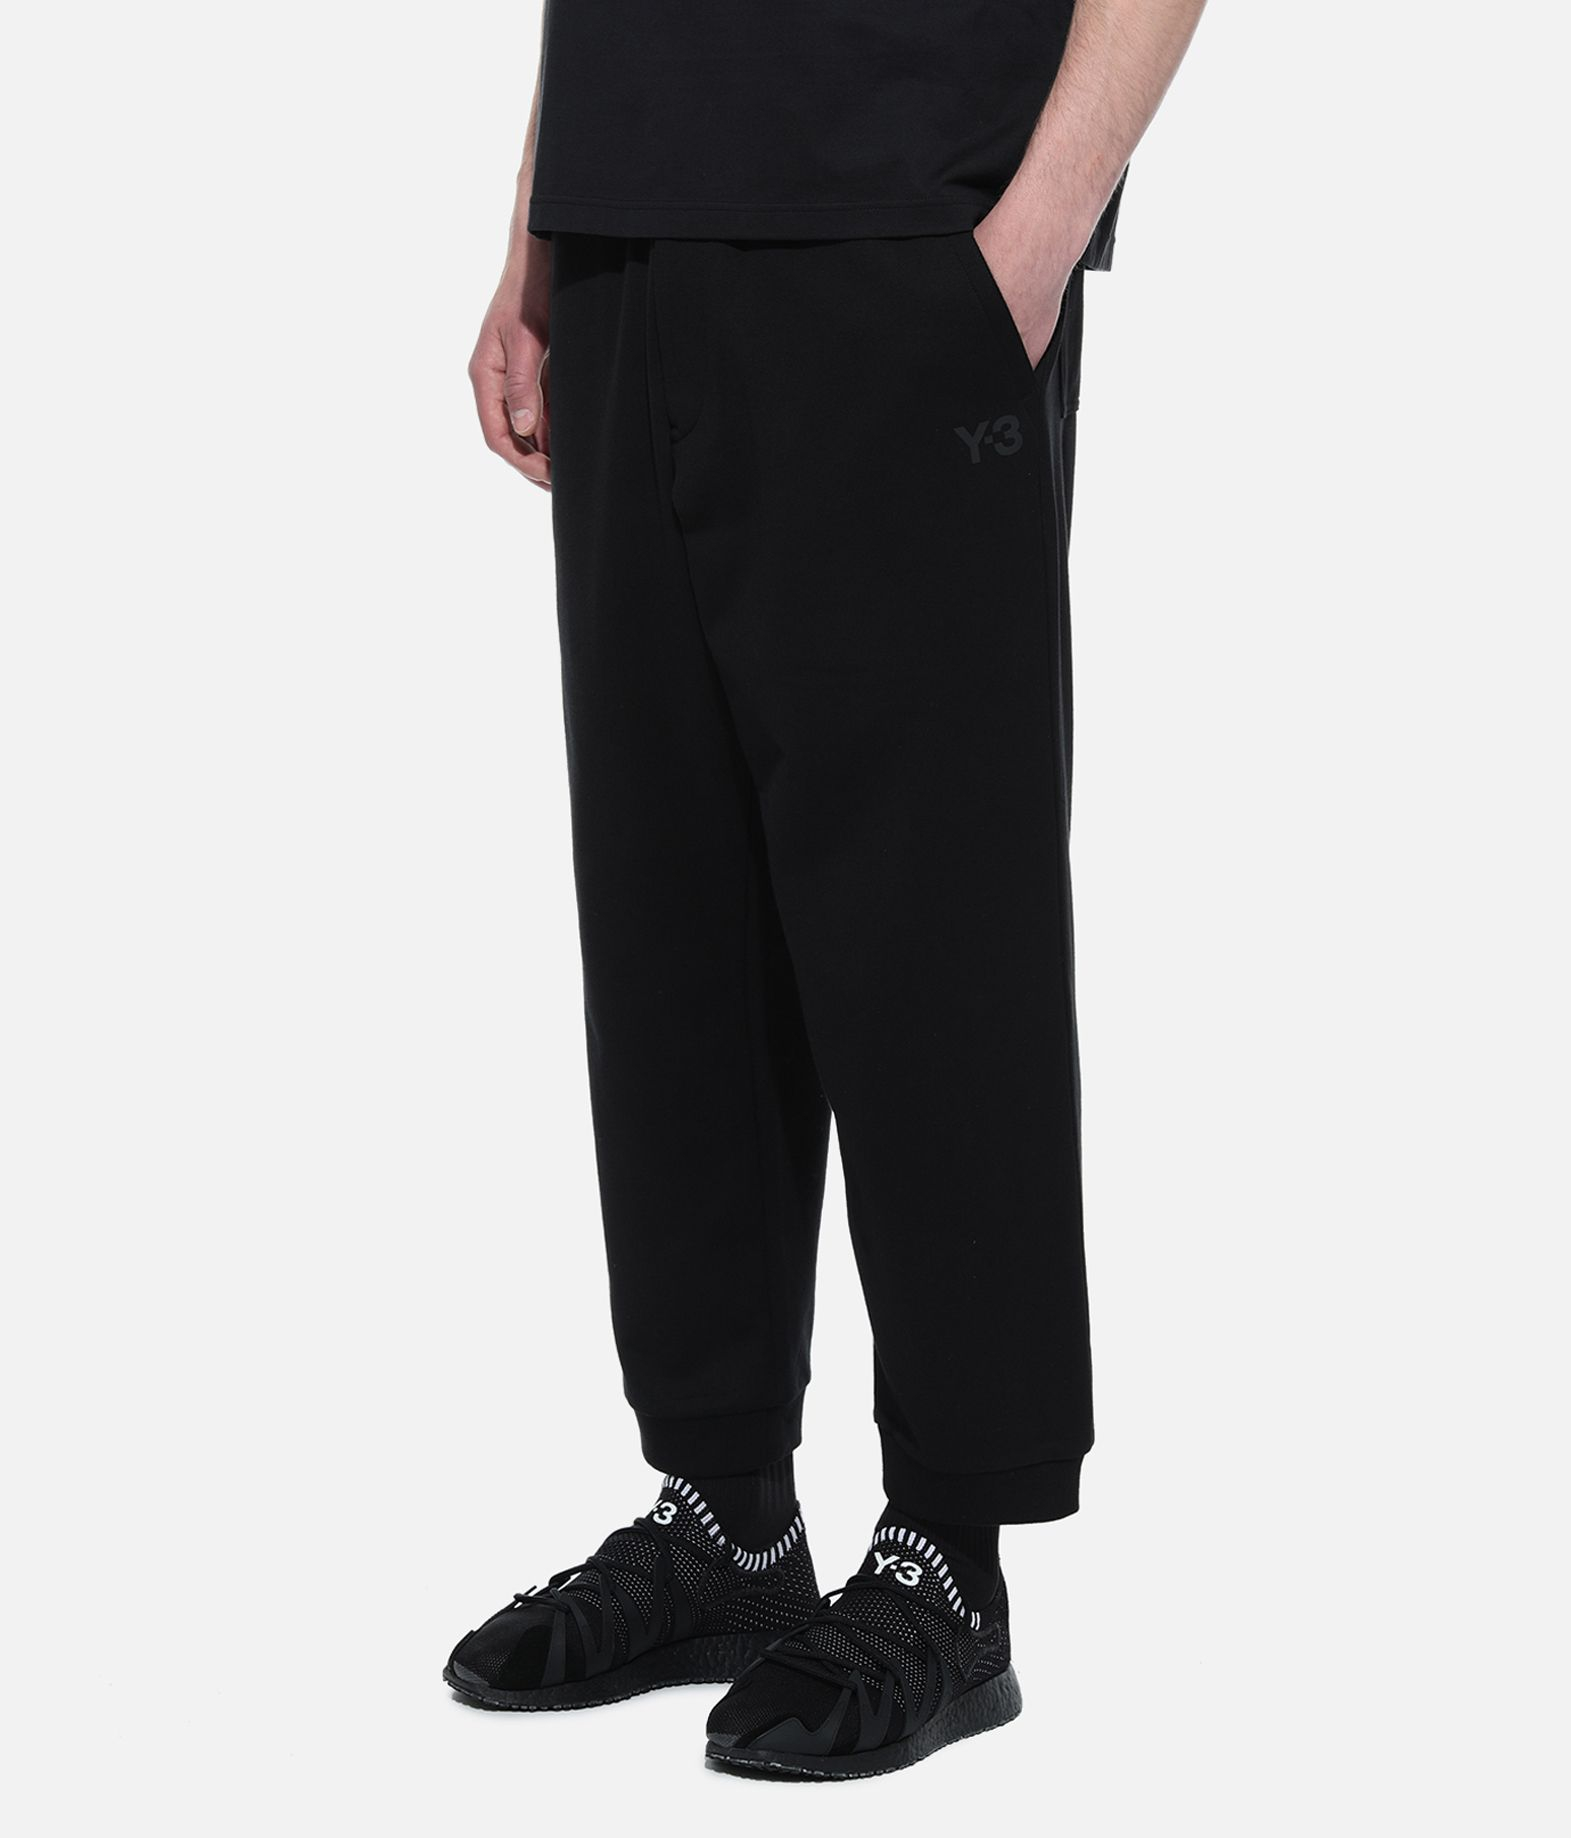 Y-3 Y-3 3-Stripes Cuff Pants Casual pants Man e